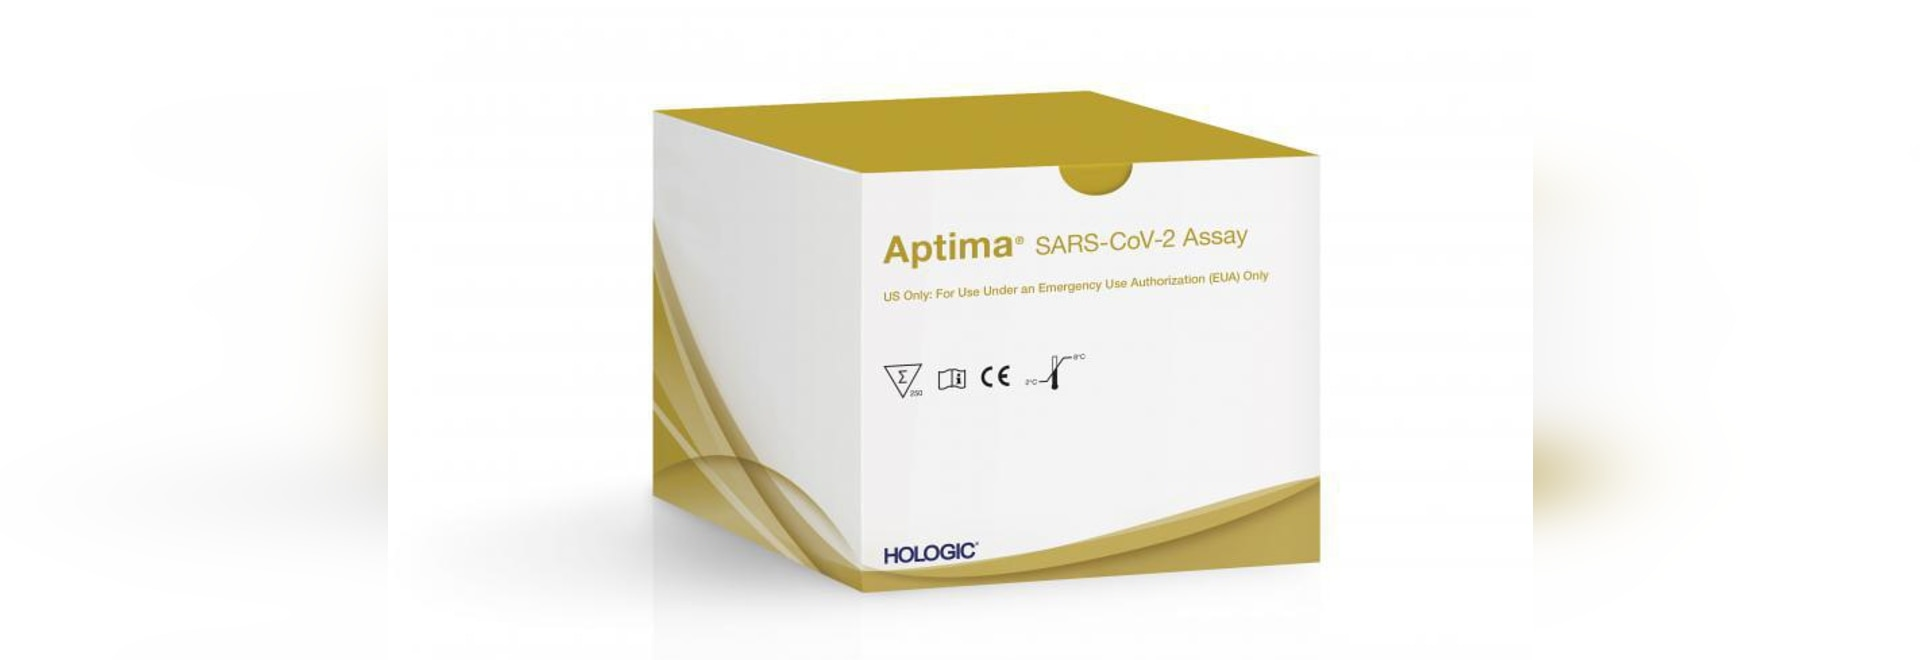 The Aptima SARS-CoV-2 test runs on Hologic's Panther system.